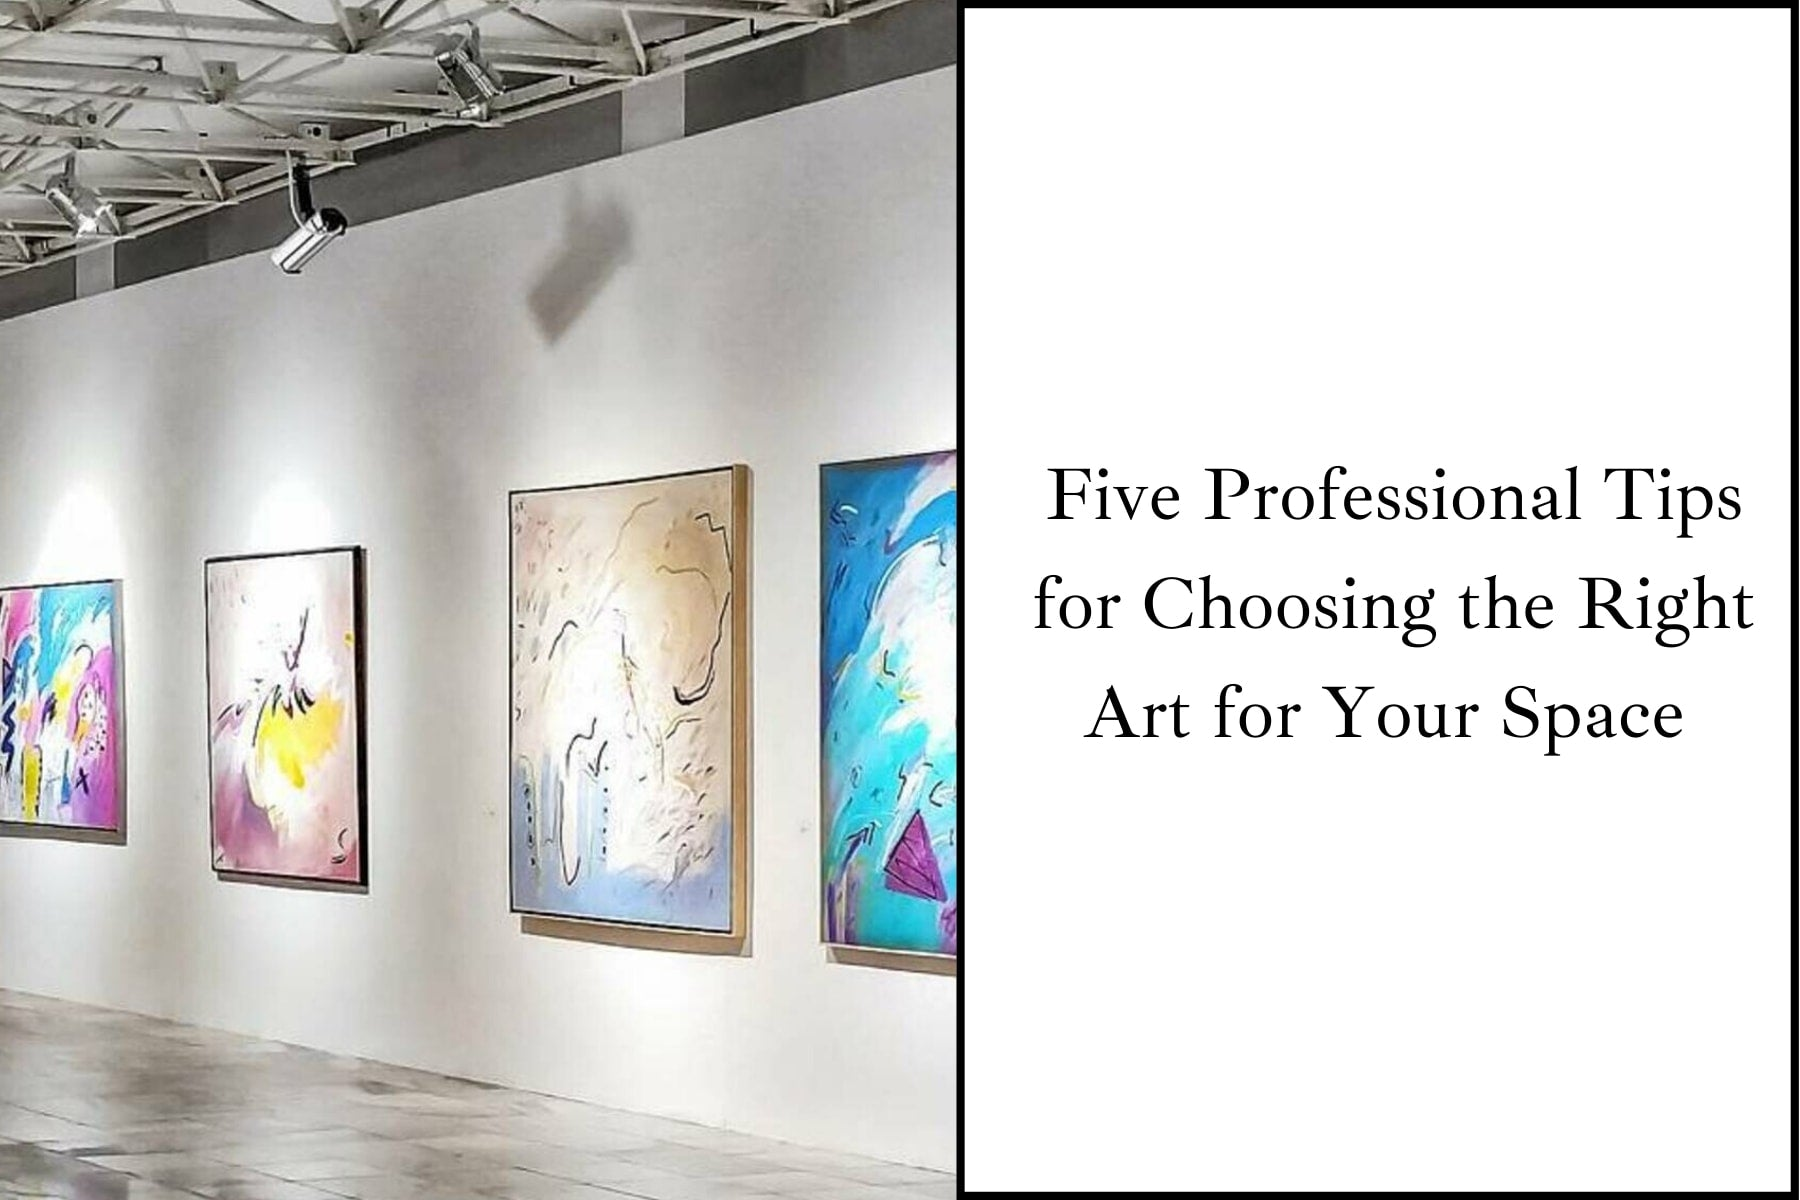 Five Professional Tips for Choosing the Right Art for Your Space